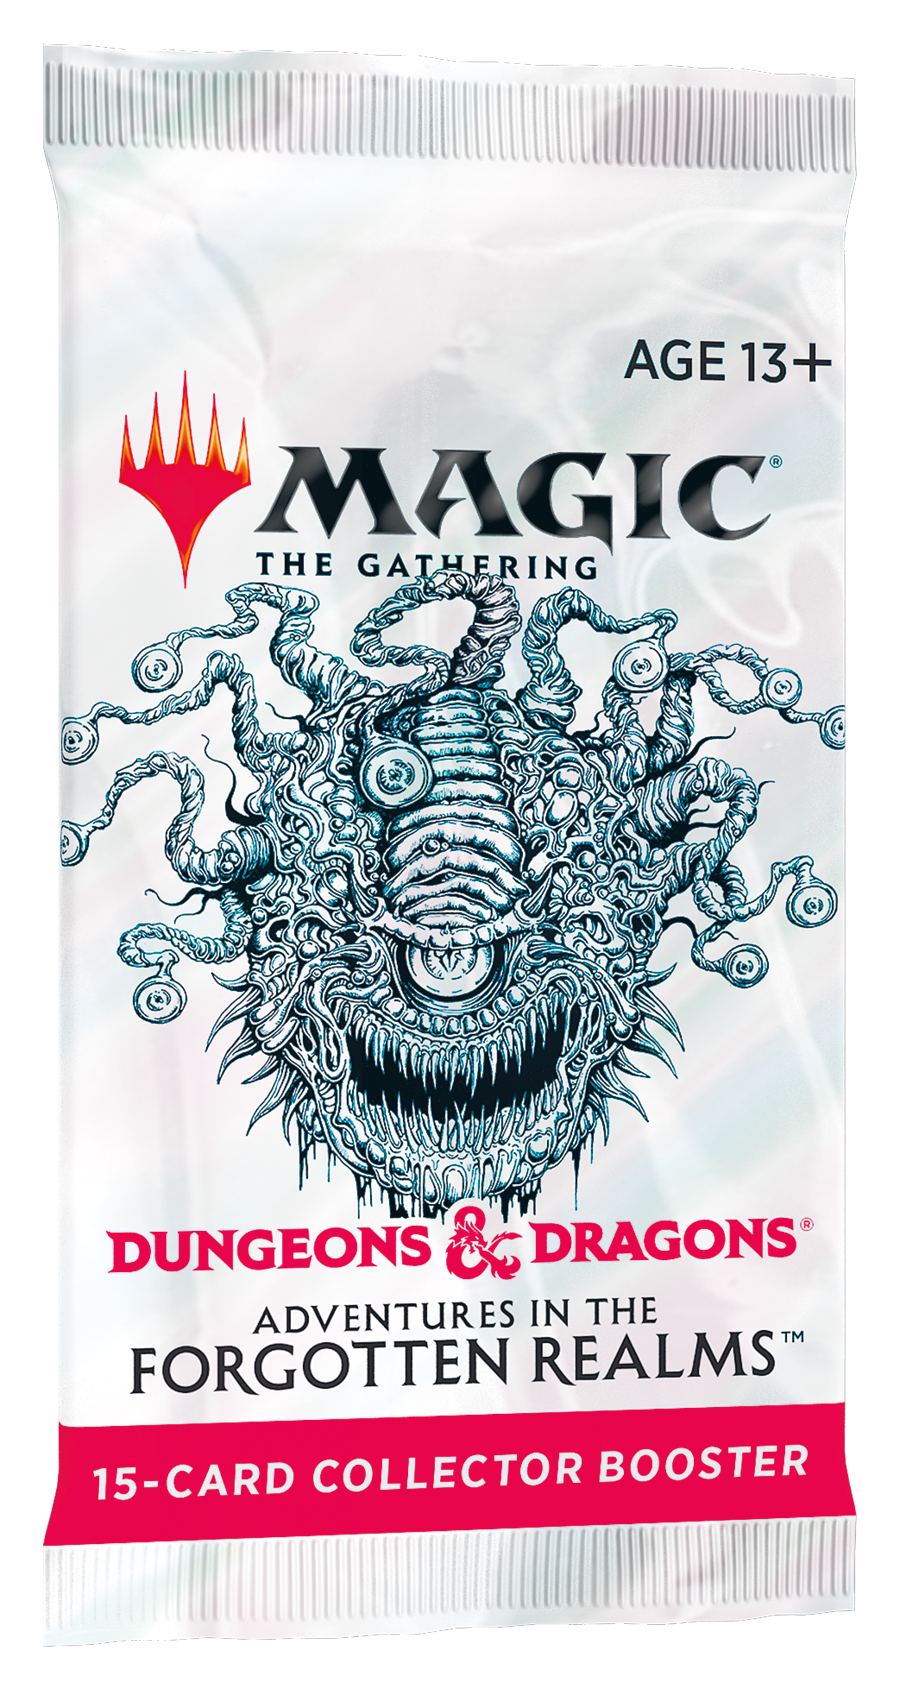 D&D Adventures in the Forgotten Realms Collector Booster Pack